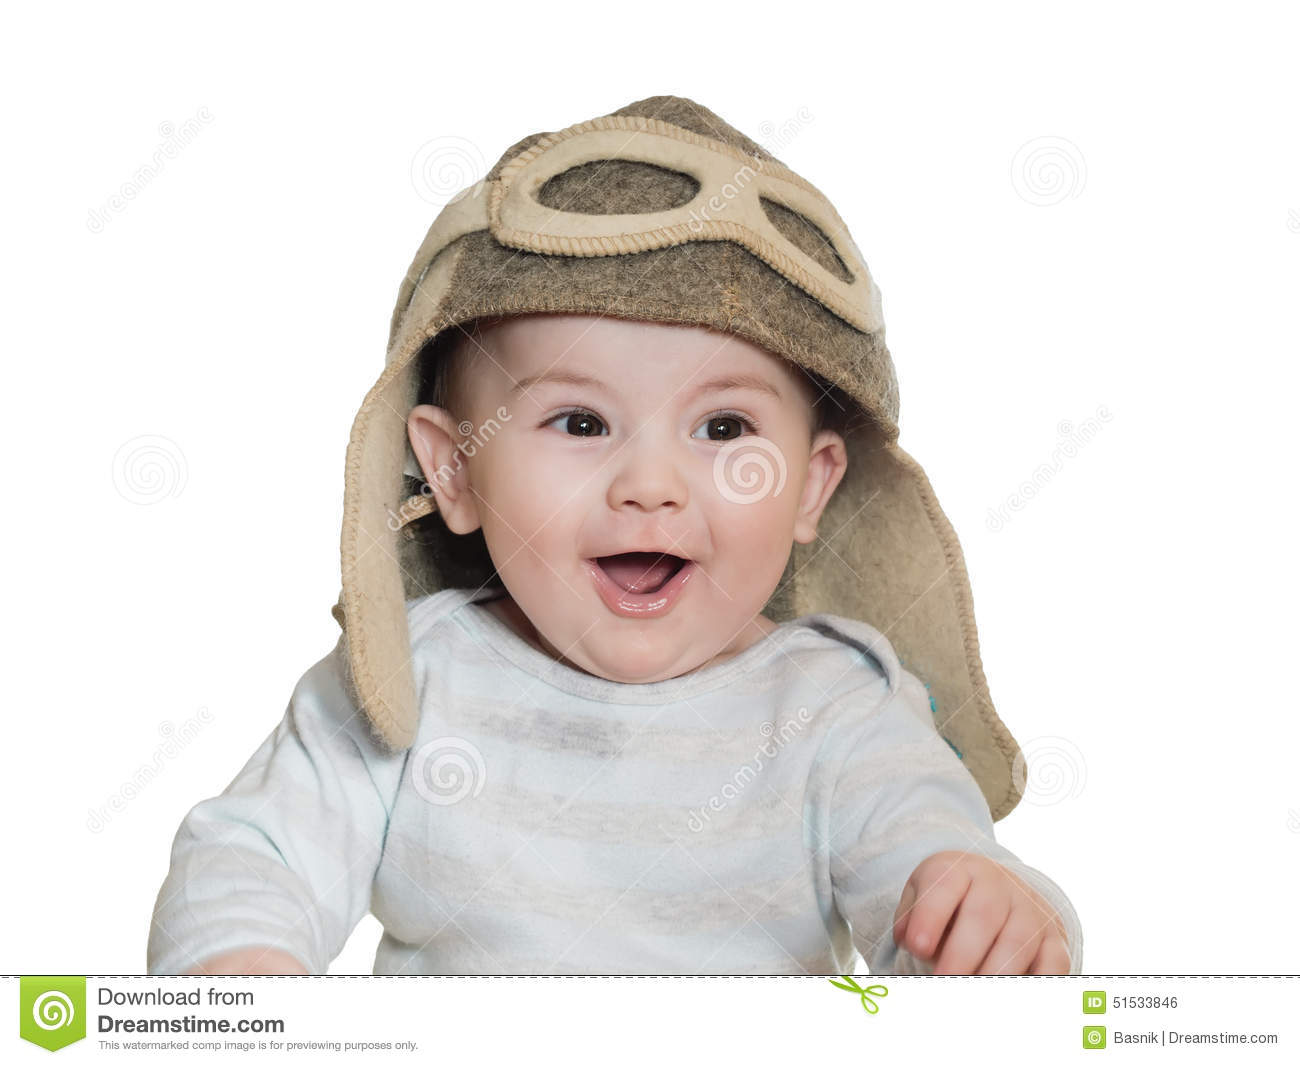 Caucasian Baby Boy In Pilot Hat Isolated Stock Photo - Image of ... d7ec5bb3312